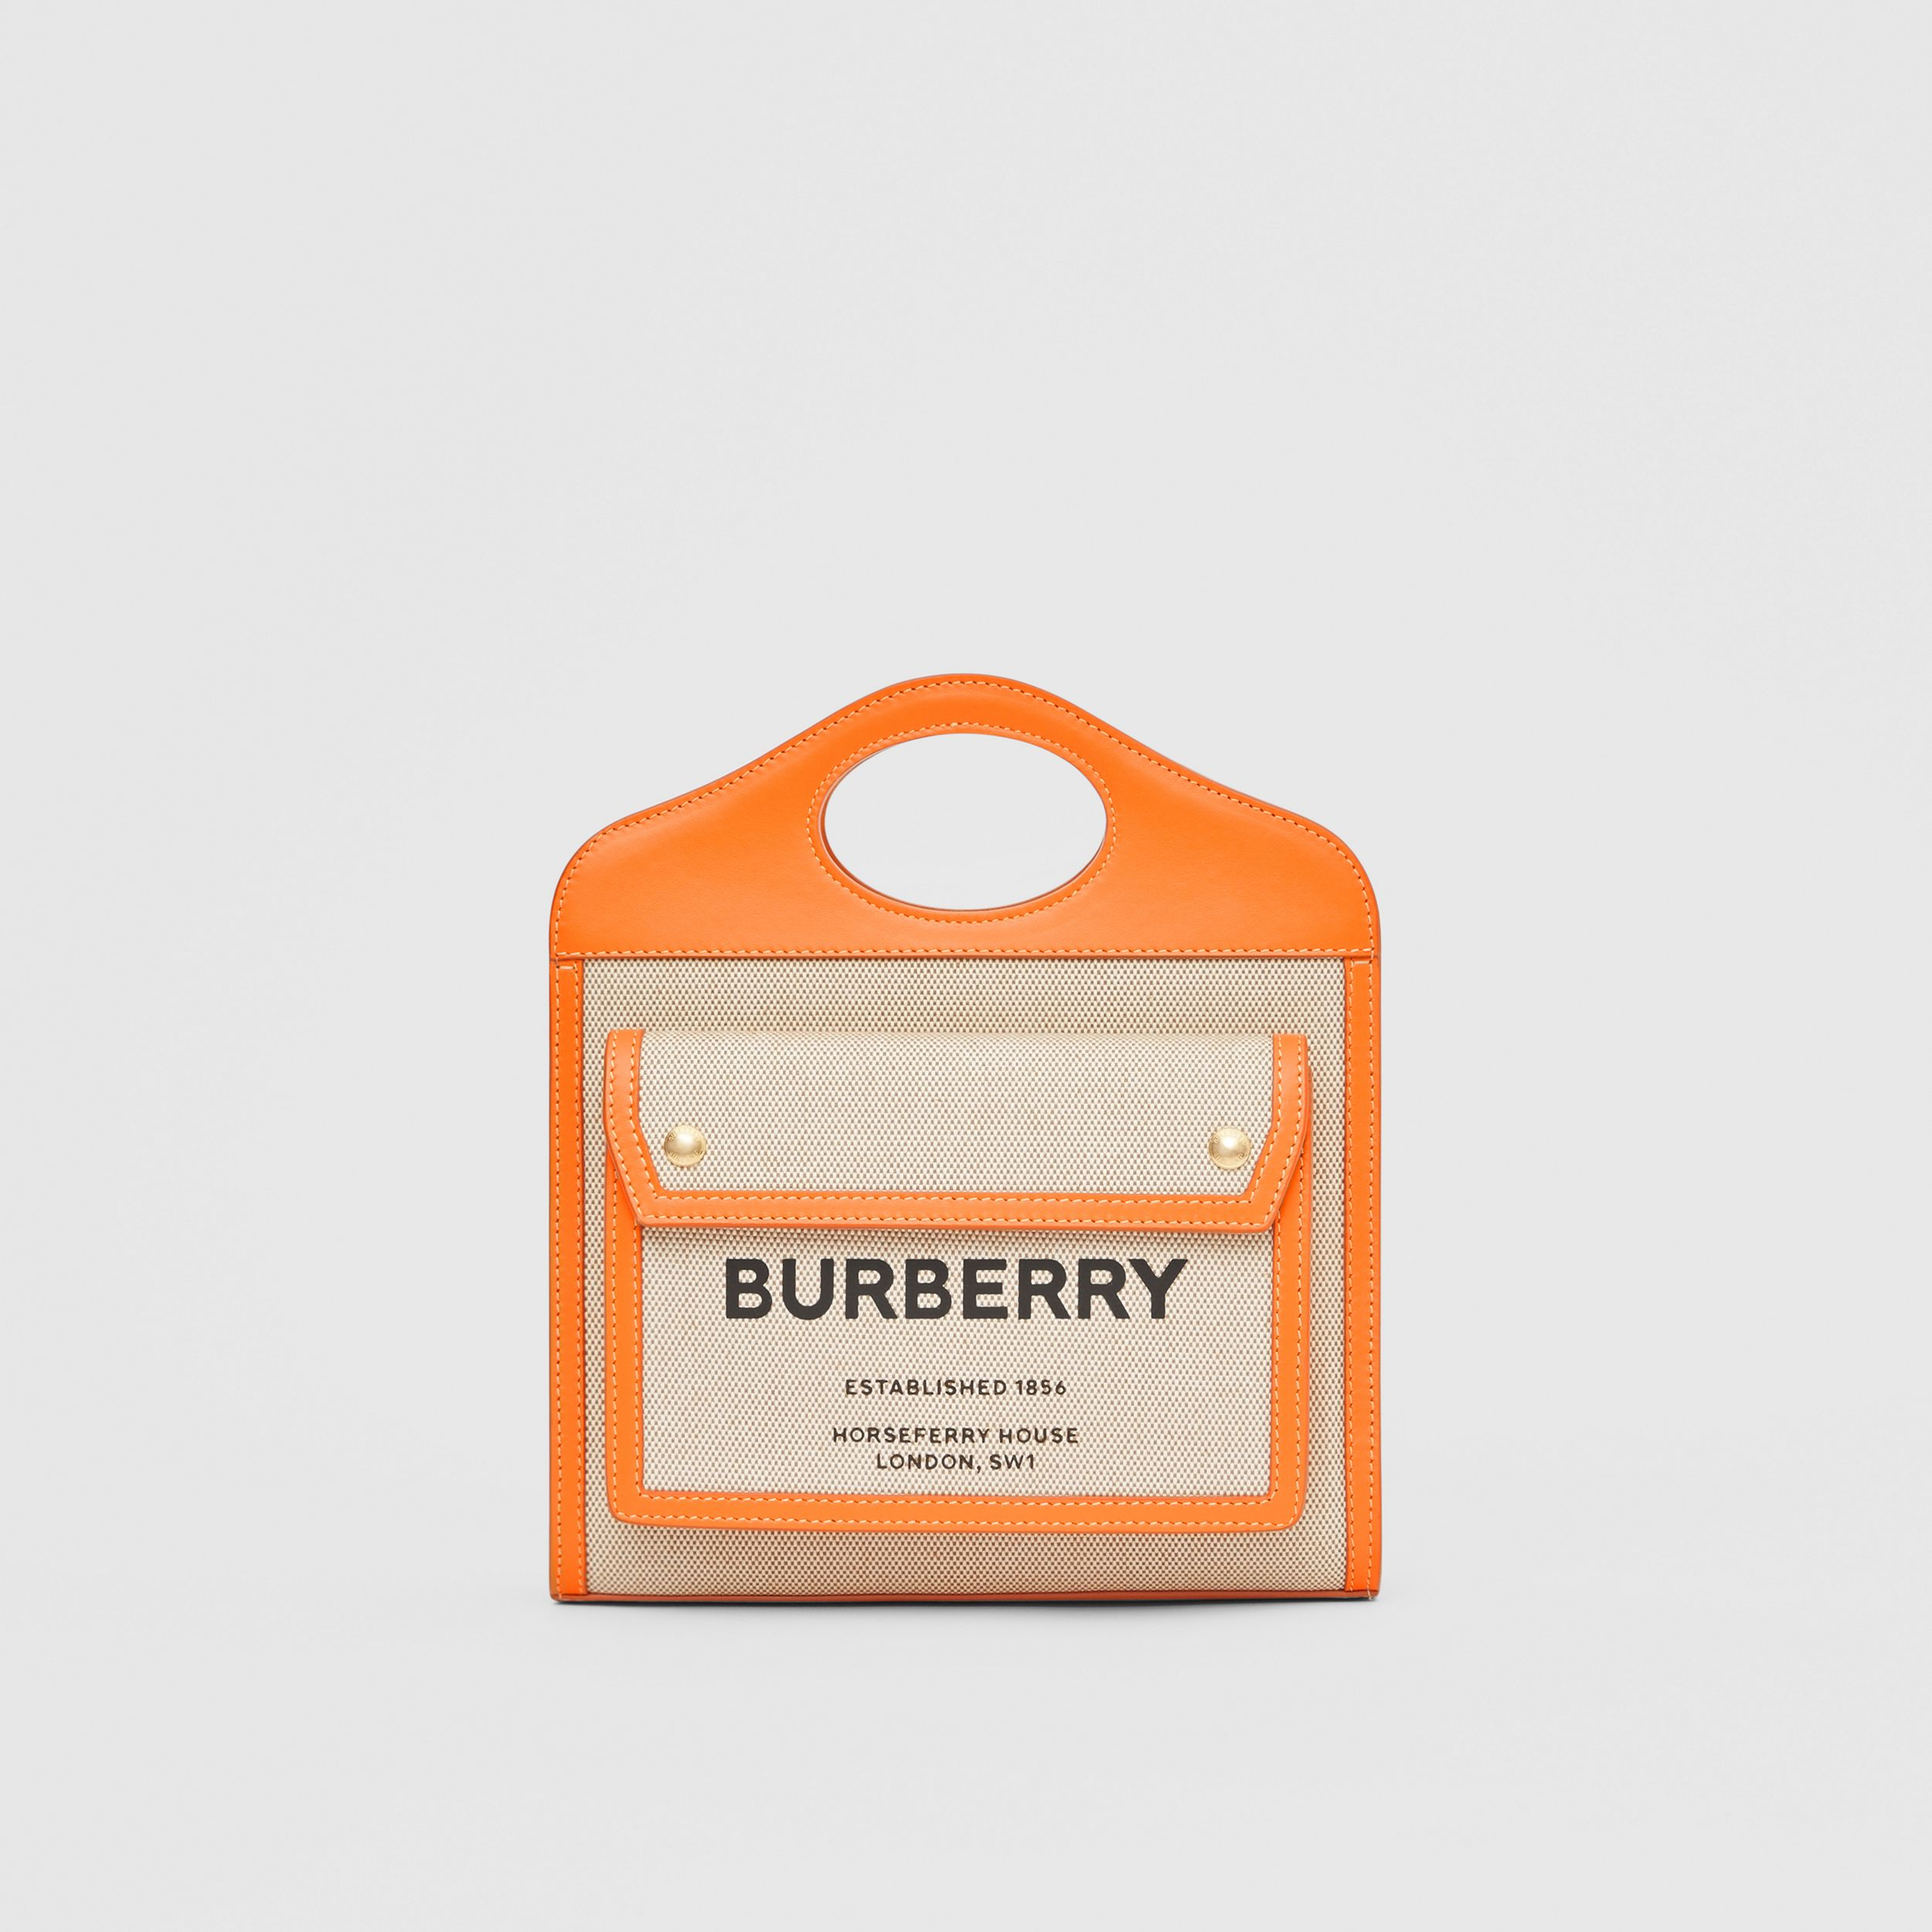 Mini Two-tone Canvas and Leather Pocket Bag in Orange - Women | Burberry - 1